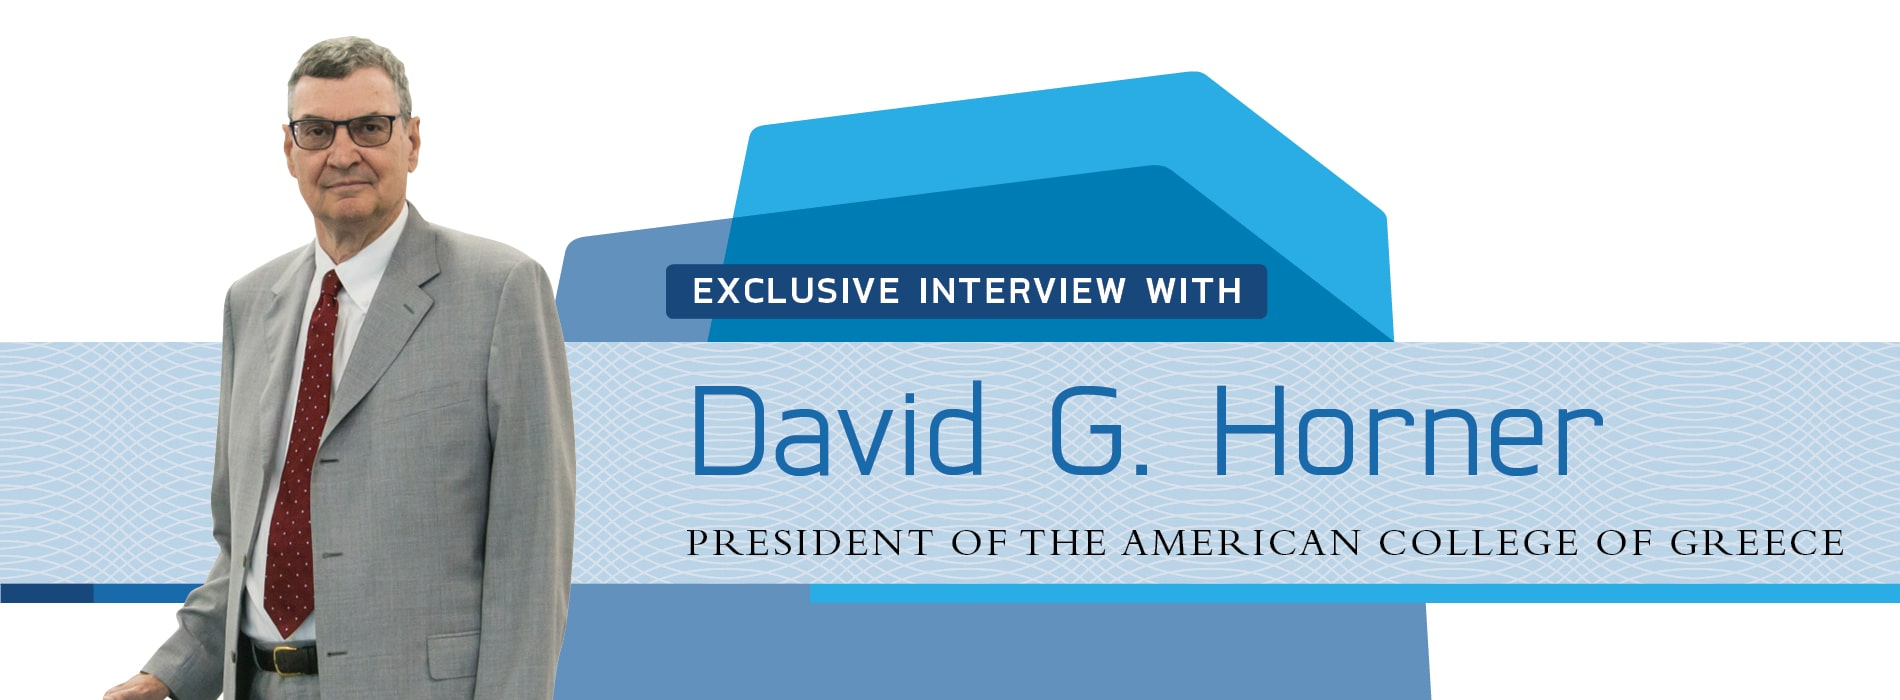 Interview with David G. Horner,President of the American College of Greece